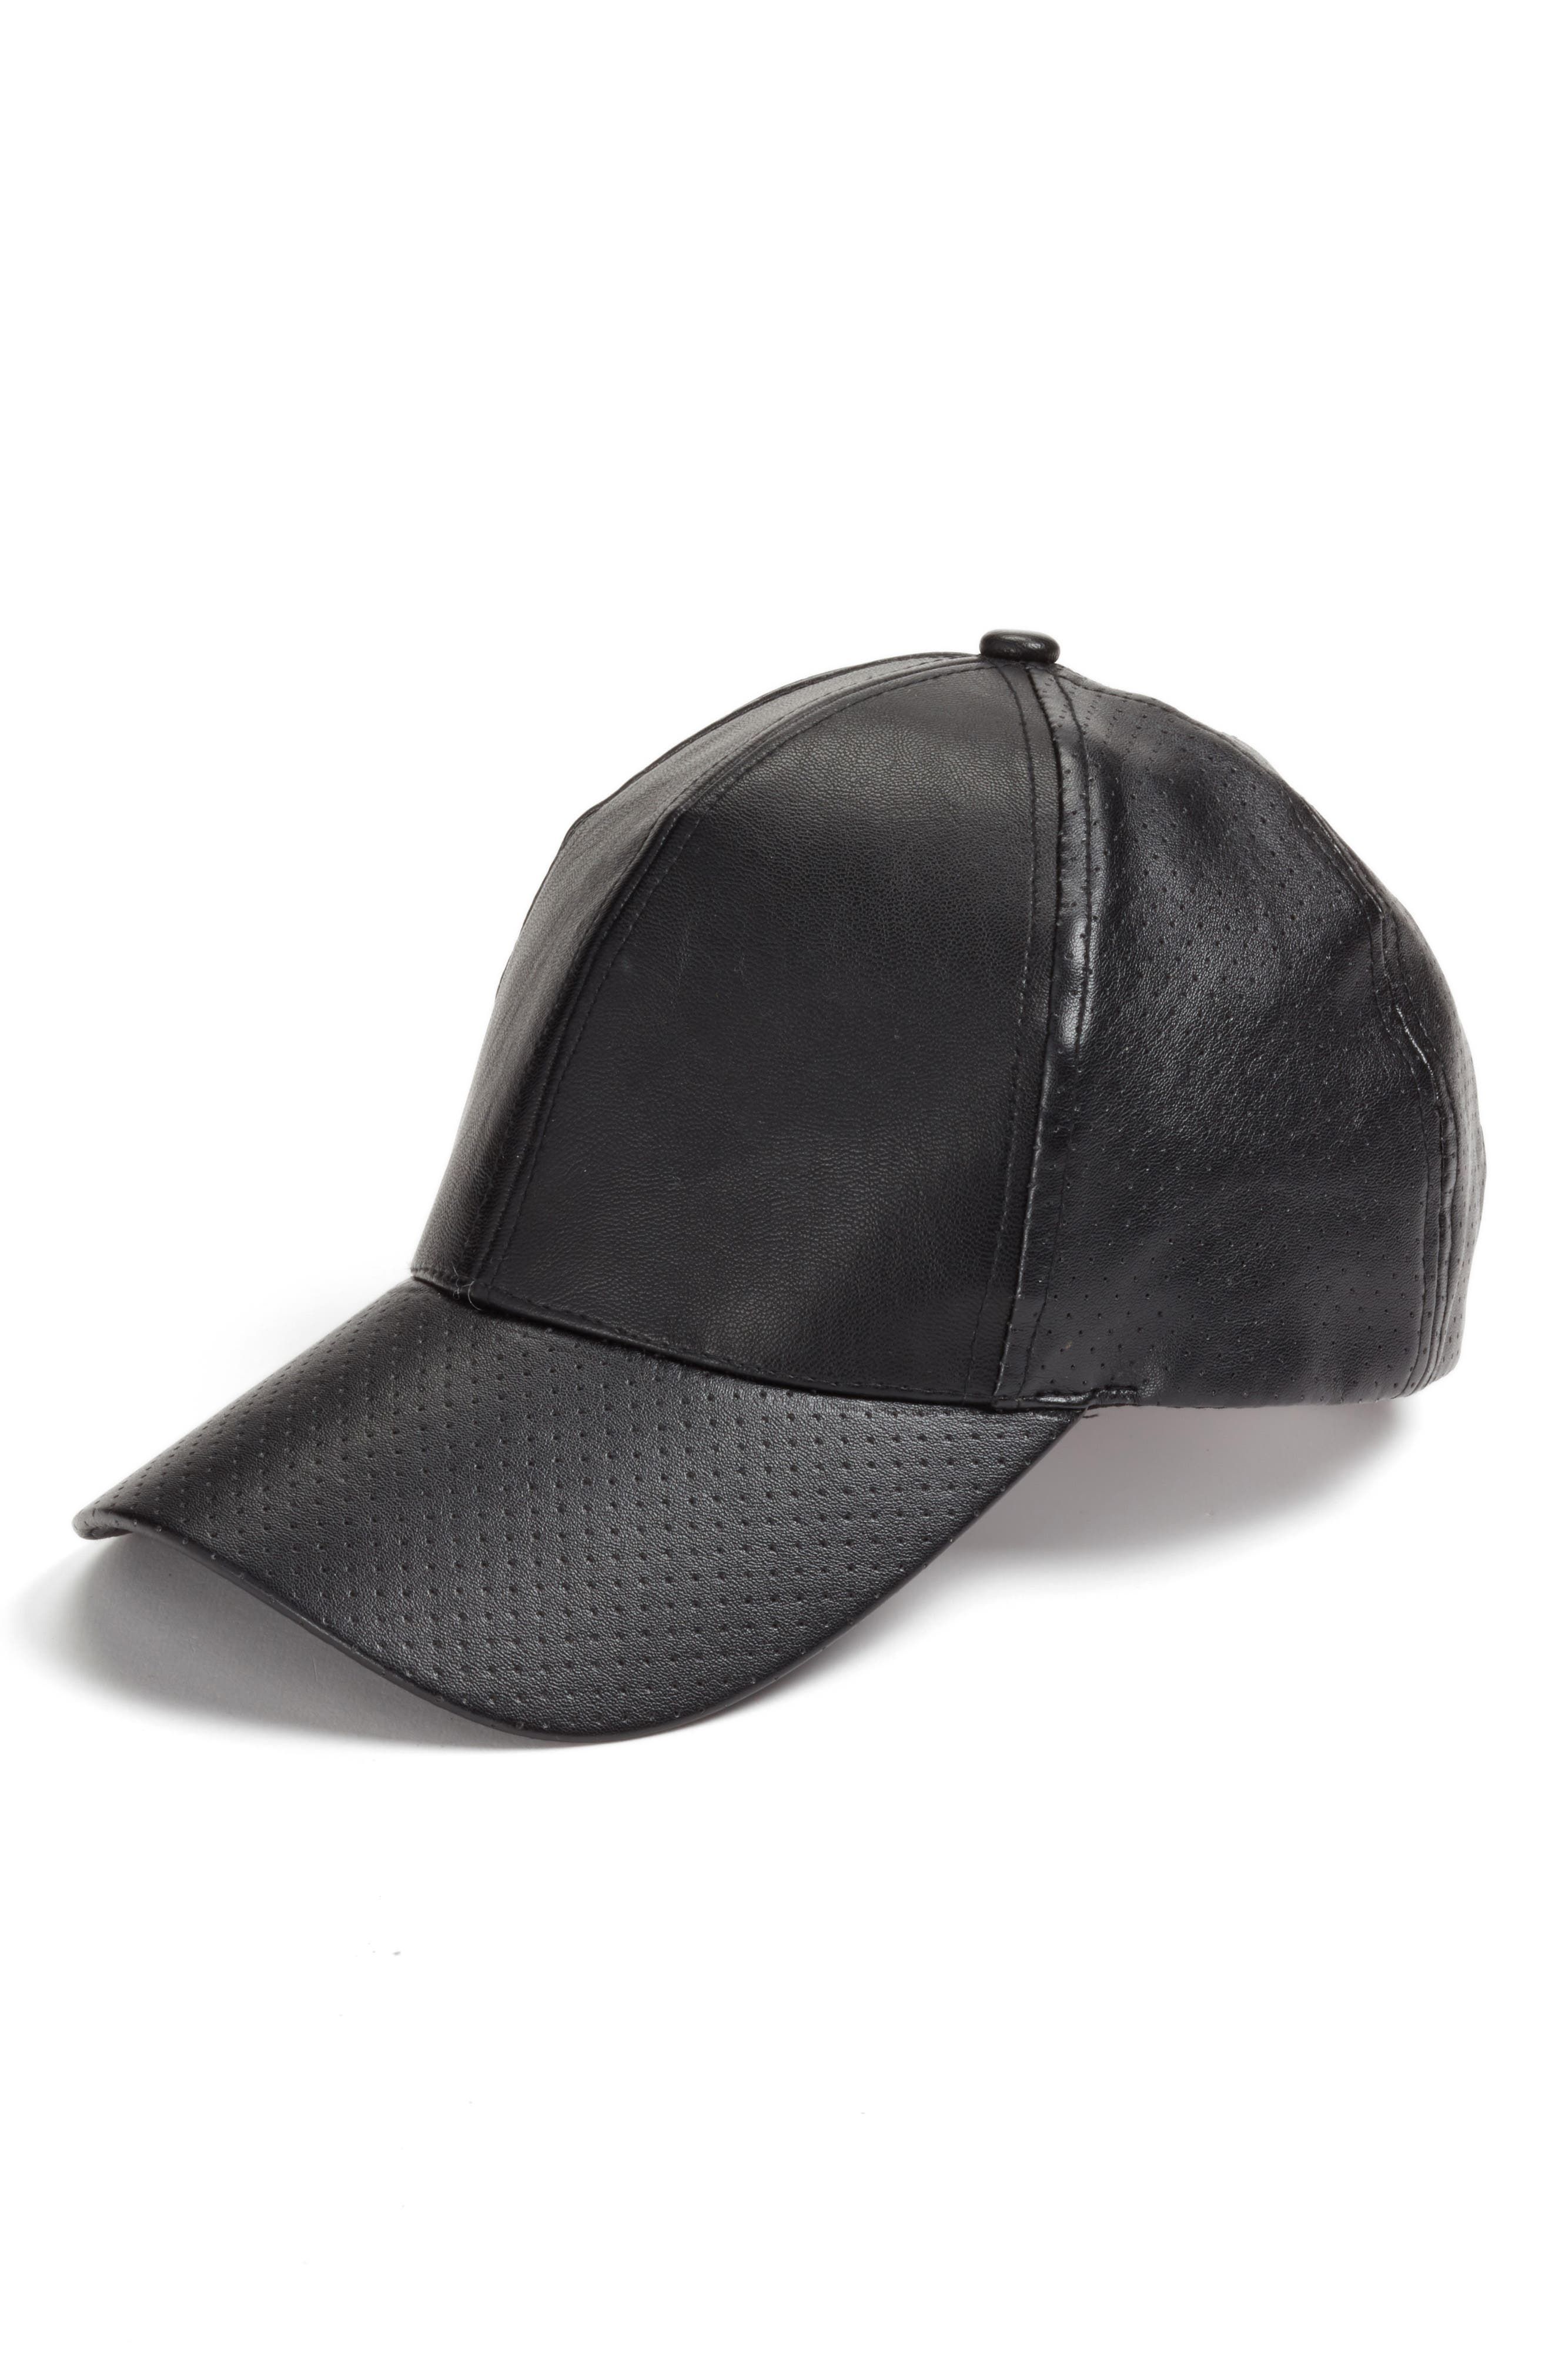 PHASE 3 Faux Leather Baseball Cap, Main, color, 001